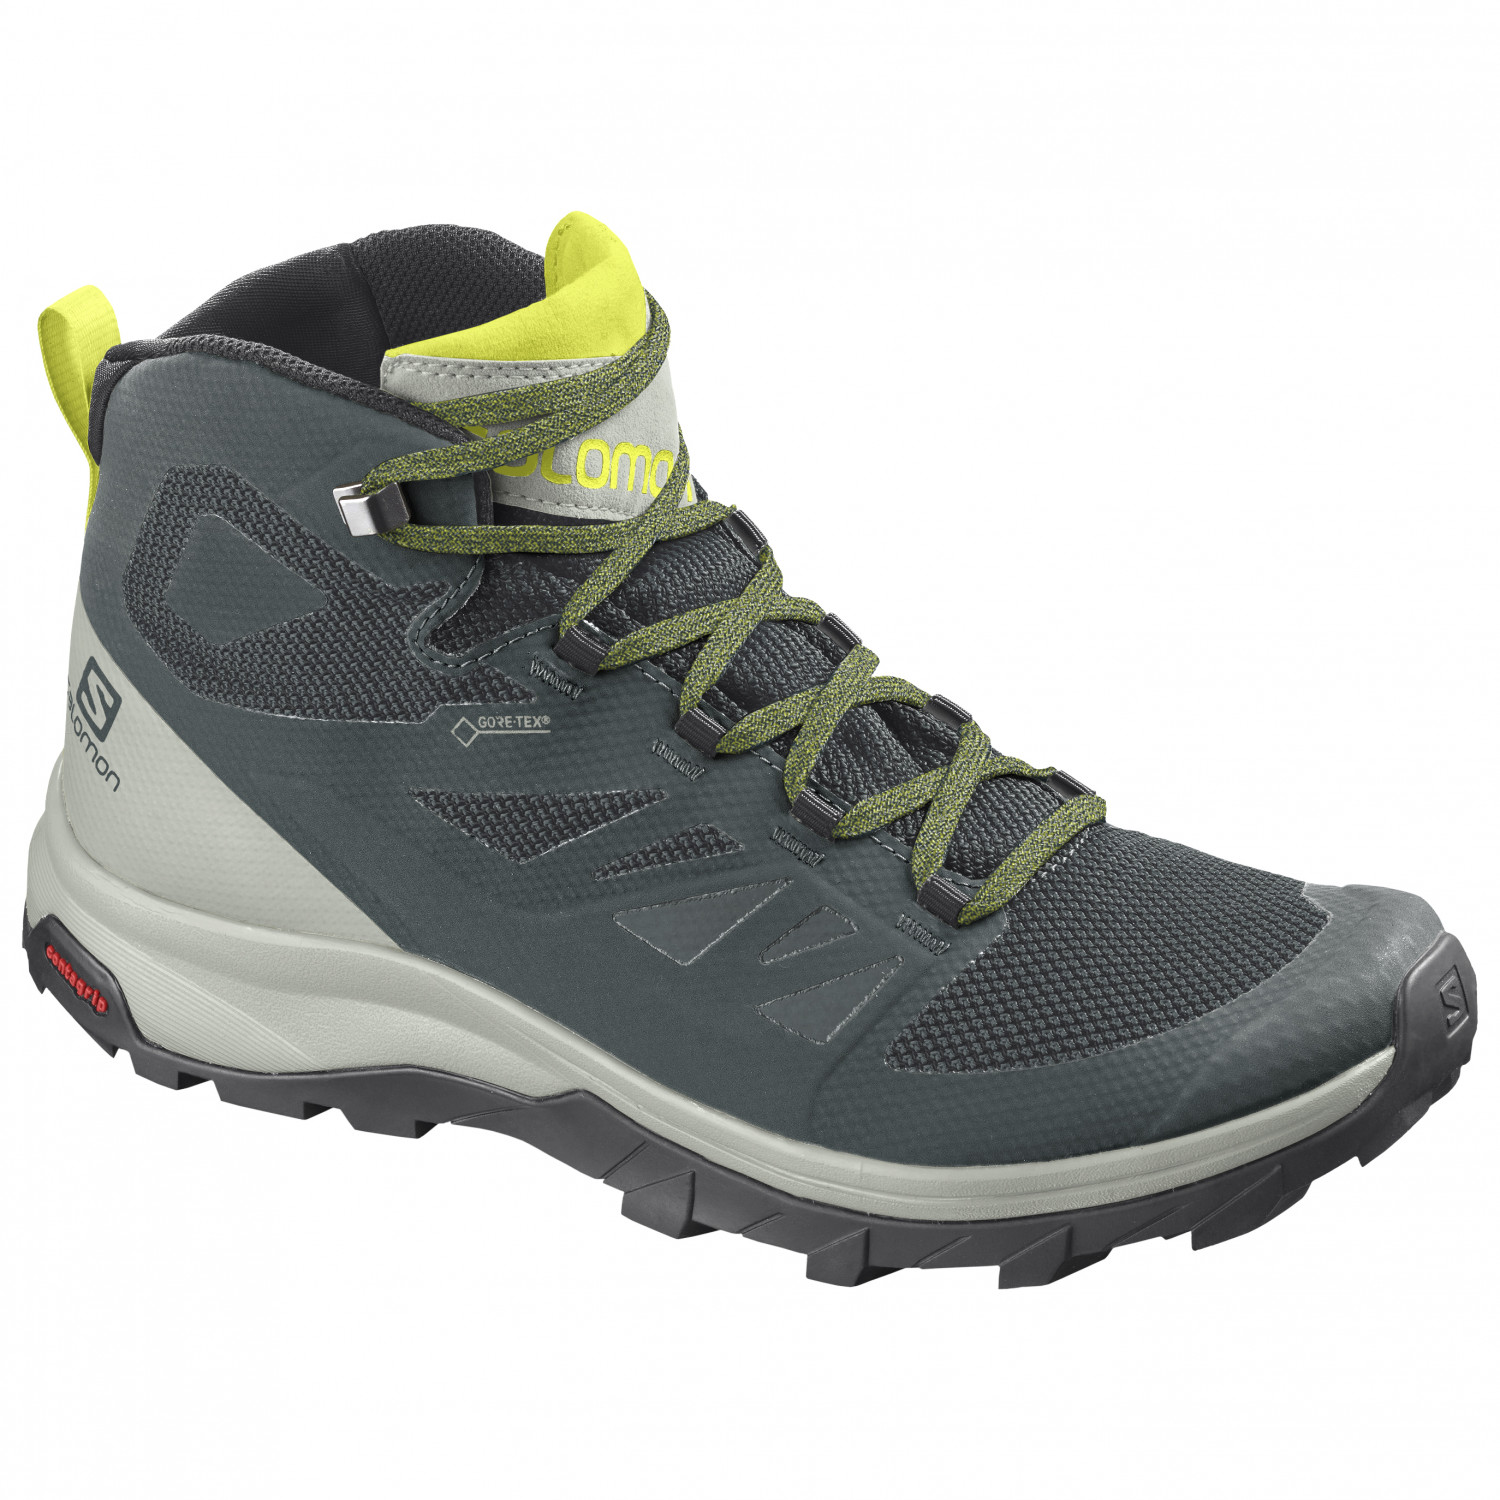 Salomon - Outline Mid GTX - Botas de trekking - Green Gables / Mineral Gray  / Evening Primrose | 7 (UK)